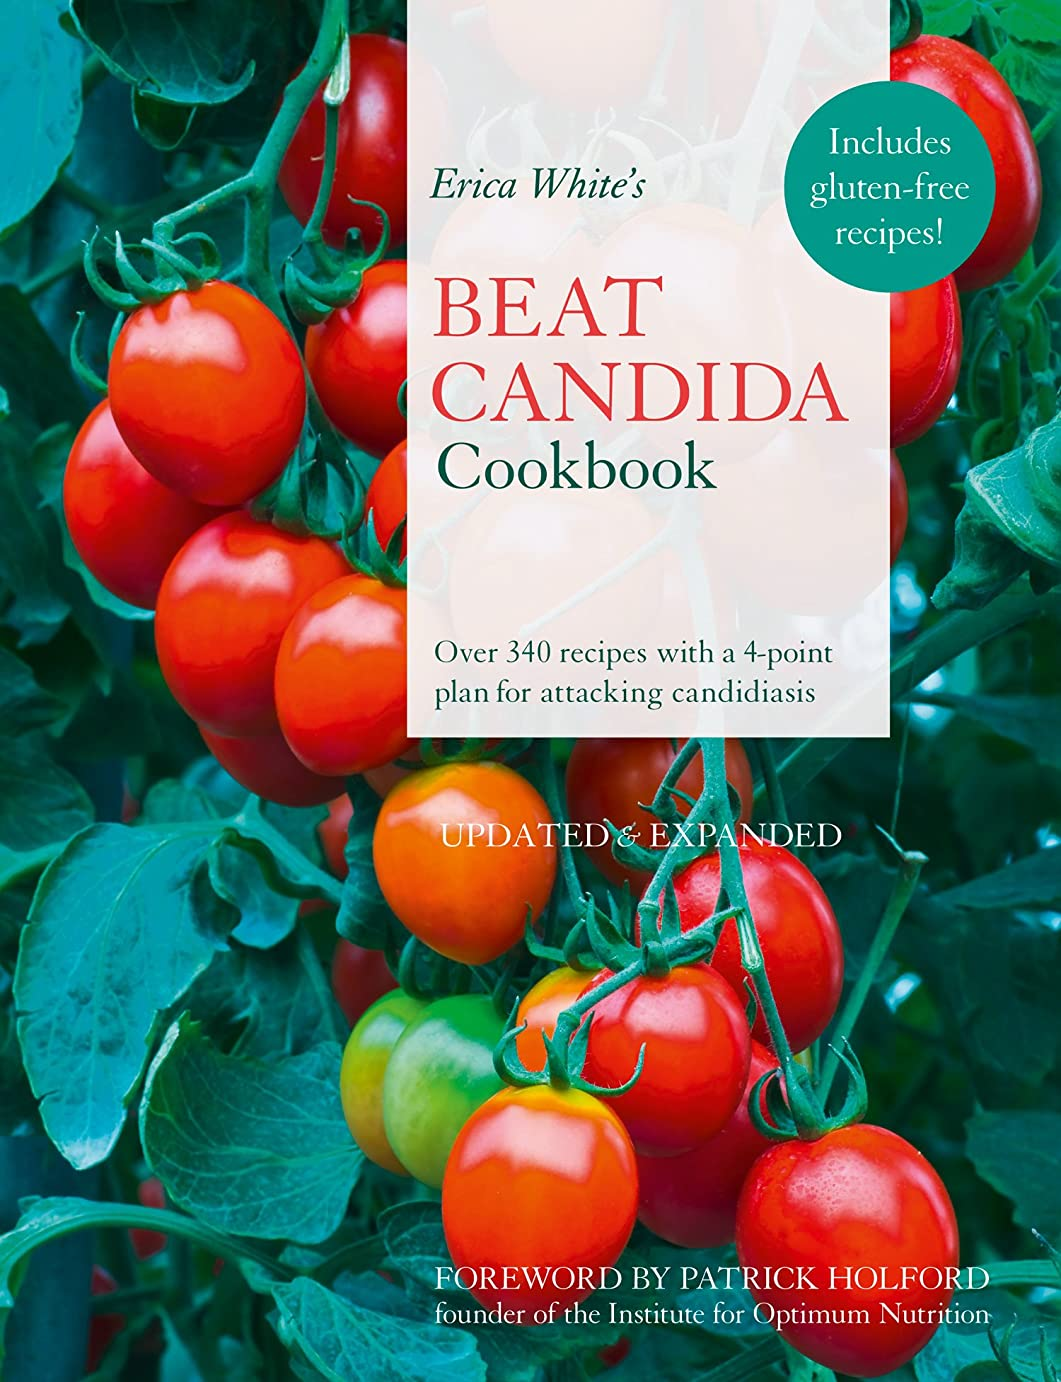 Erica White's Beat Candida Cookbook: Over 340 recipes with a 4-point plan for attacking candidiasis: Over 250 Recipes with a 4-point Plan for Attacking Candidiasis (English Edition)